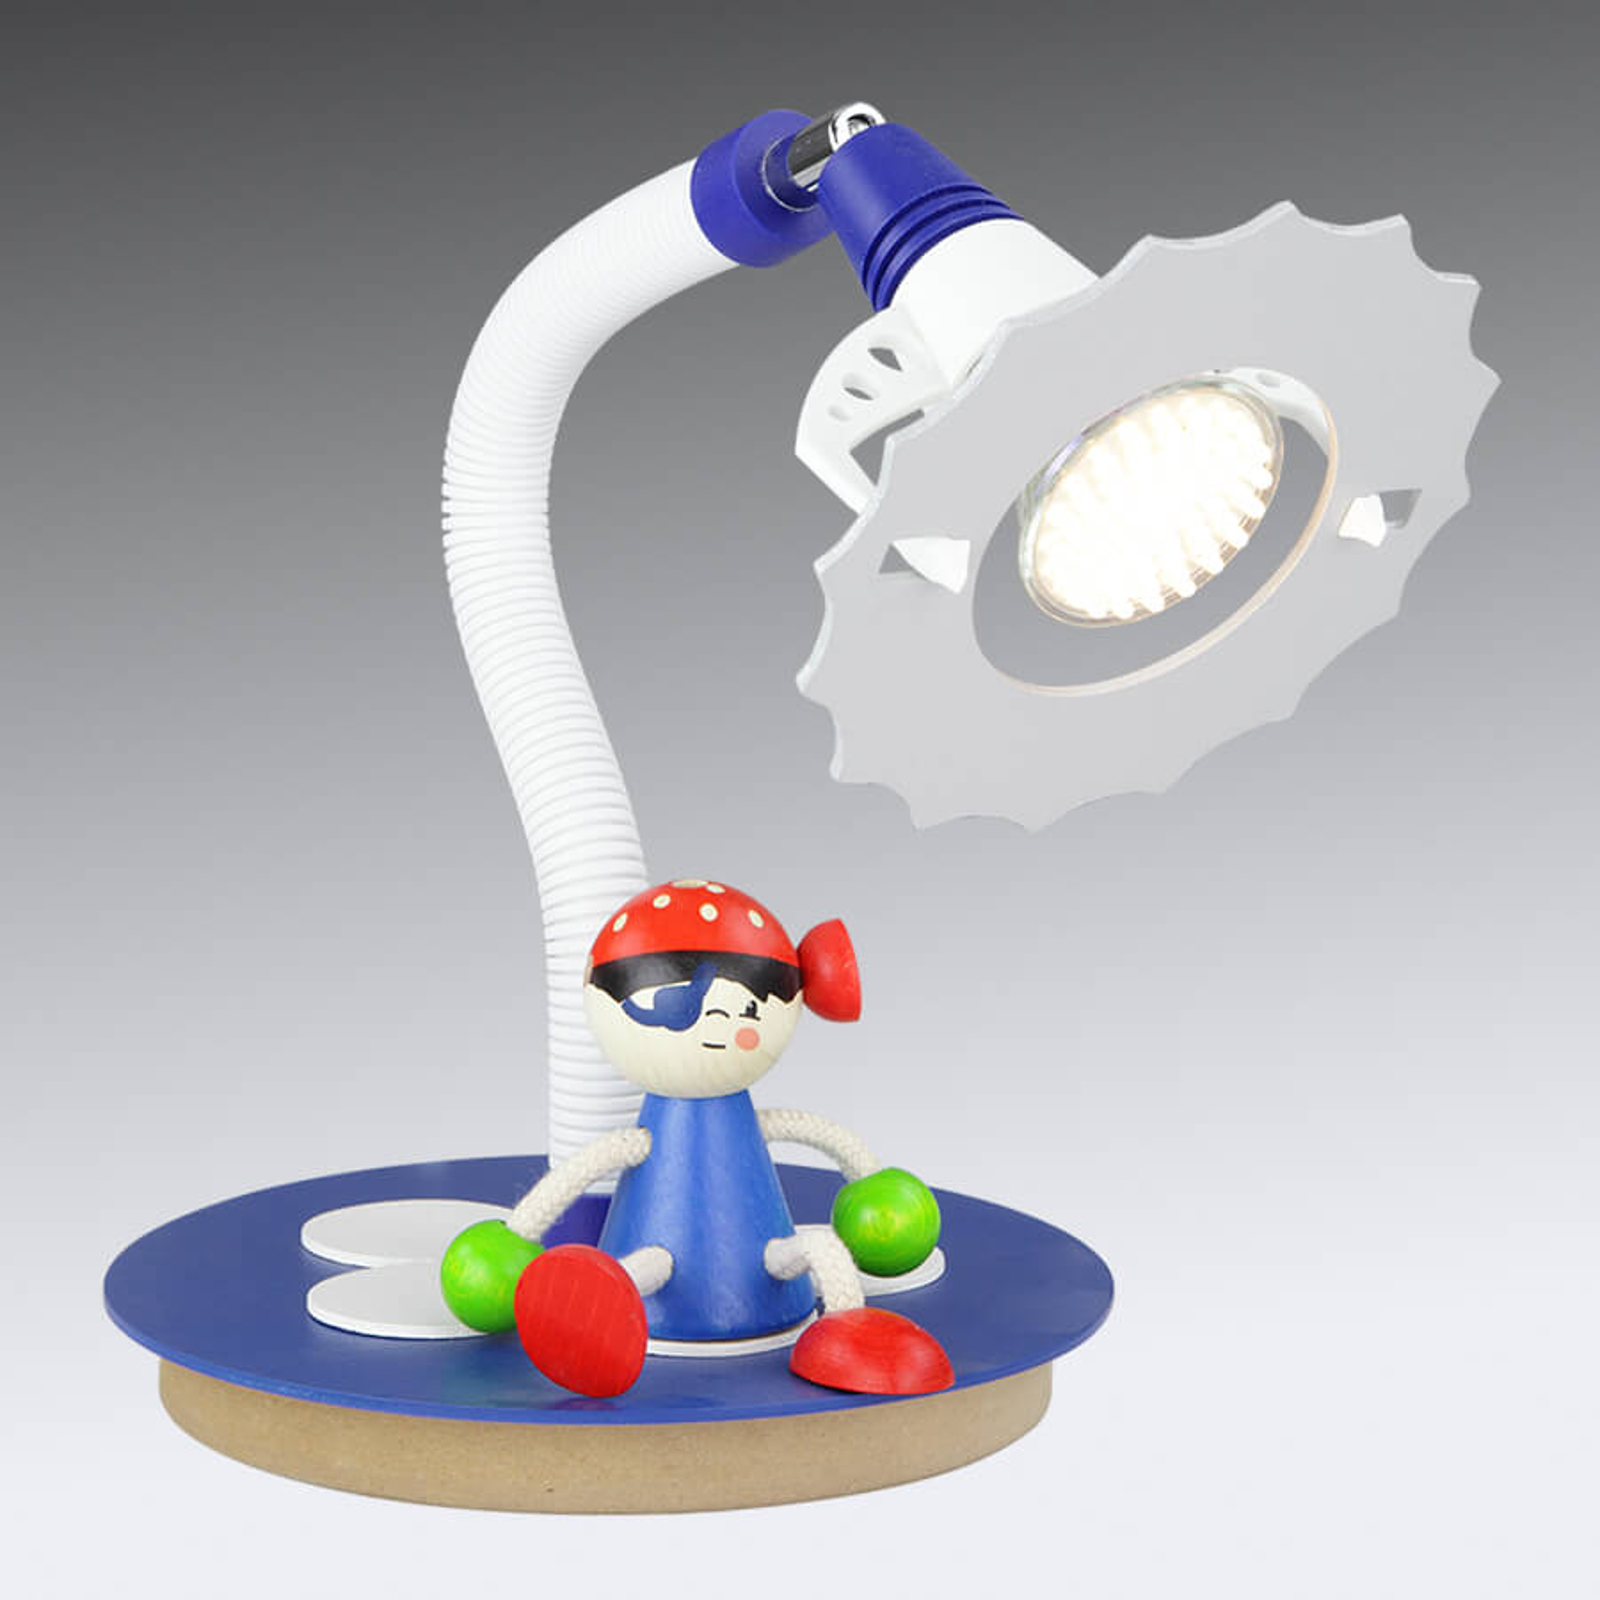 Lampe à poser LED Pirate avec personnage assis